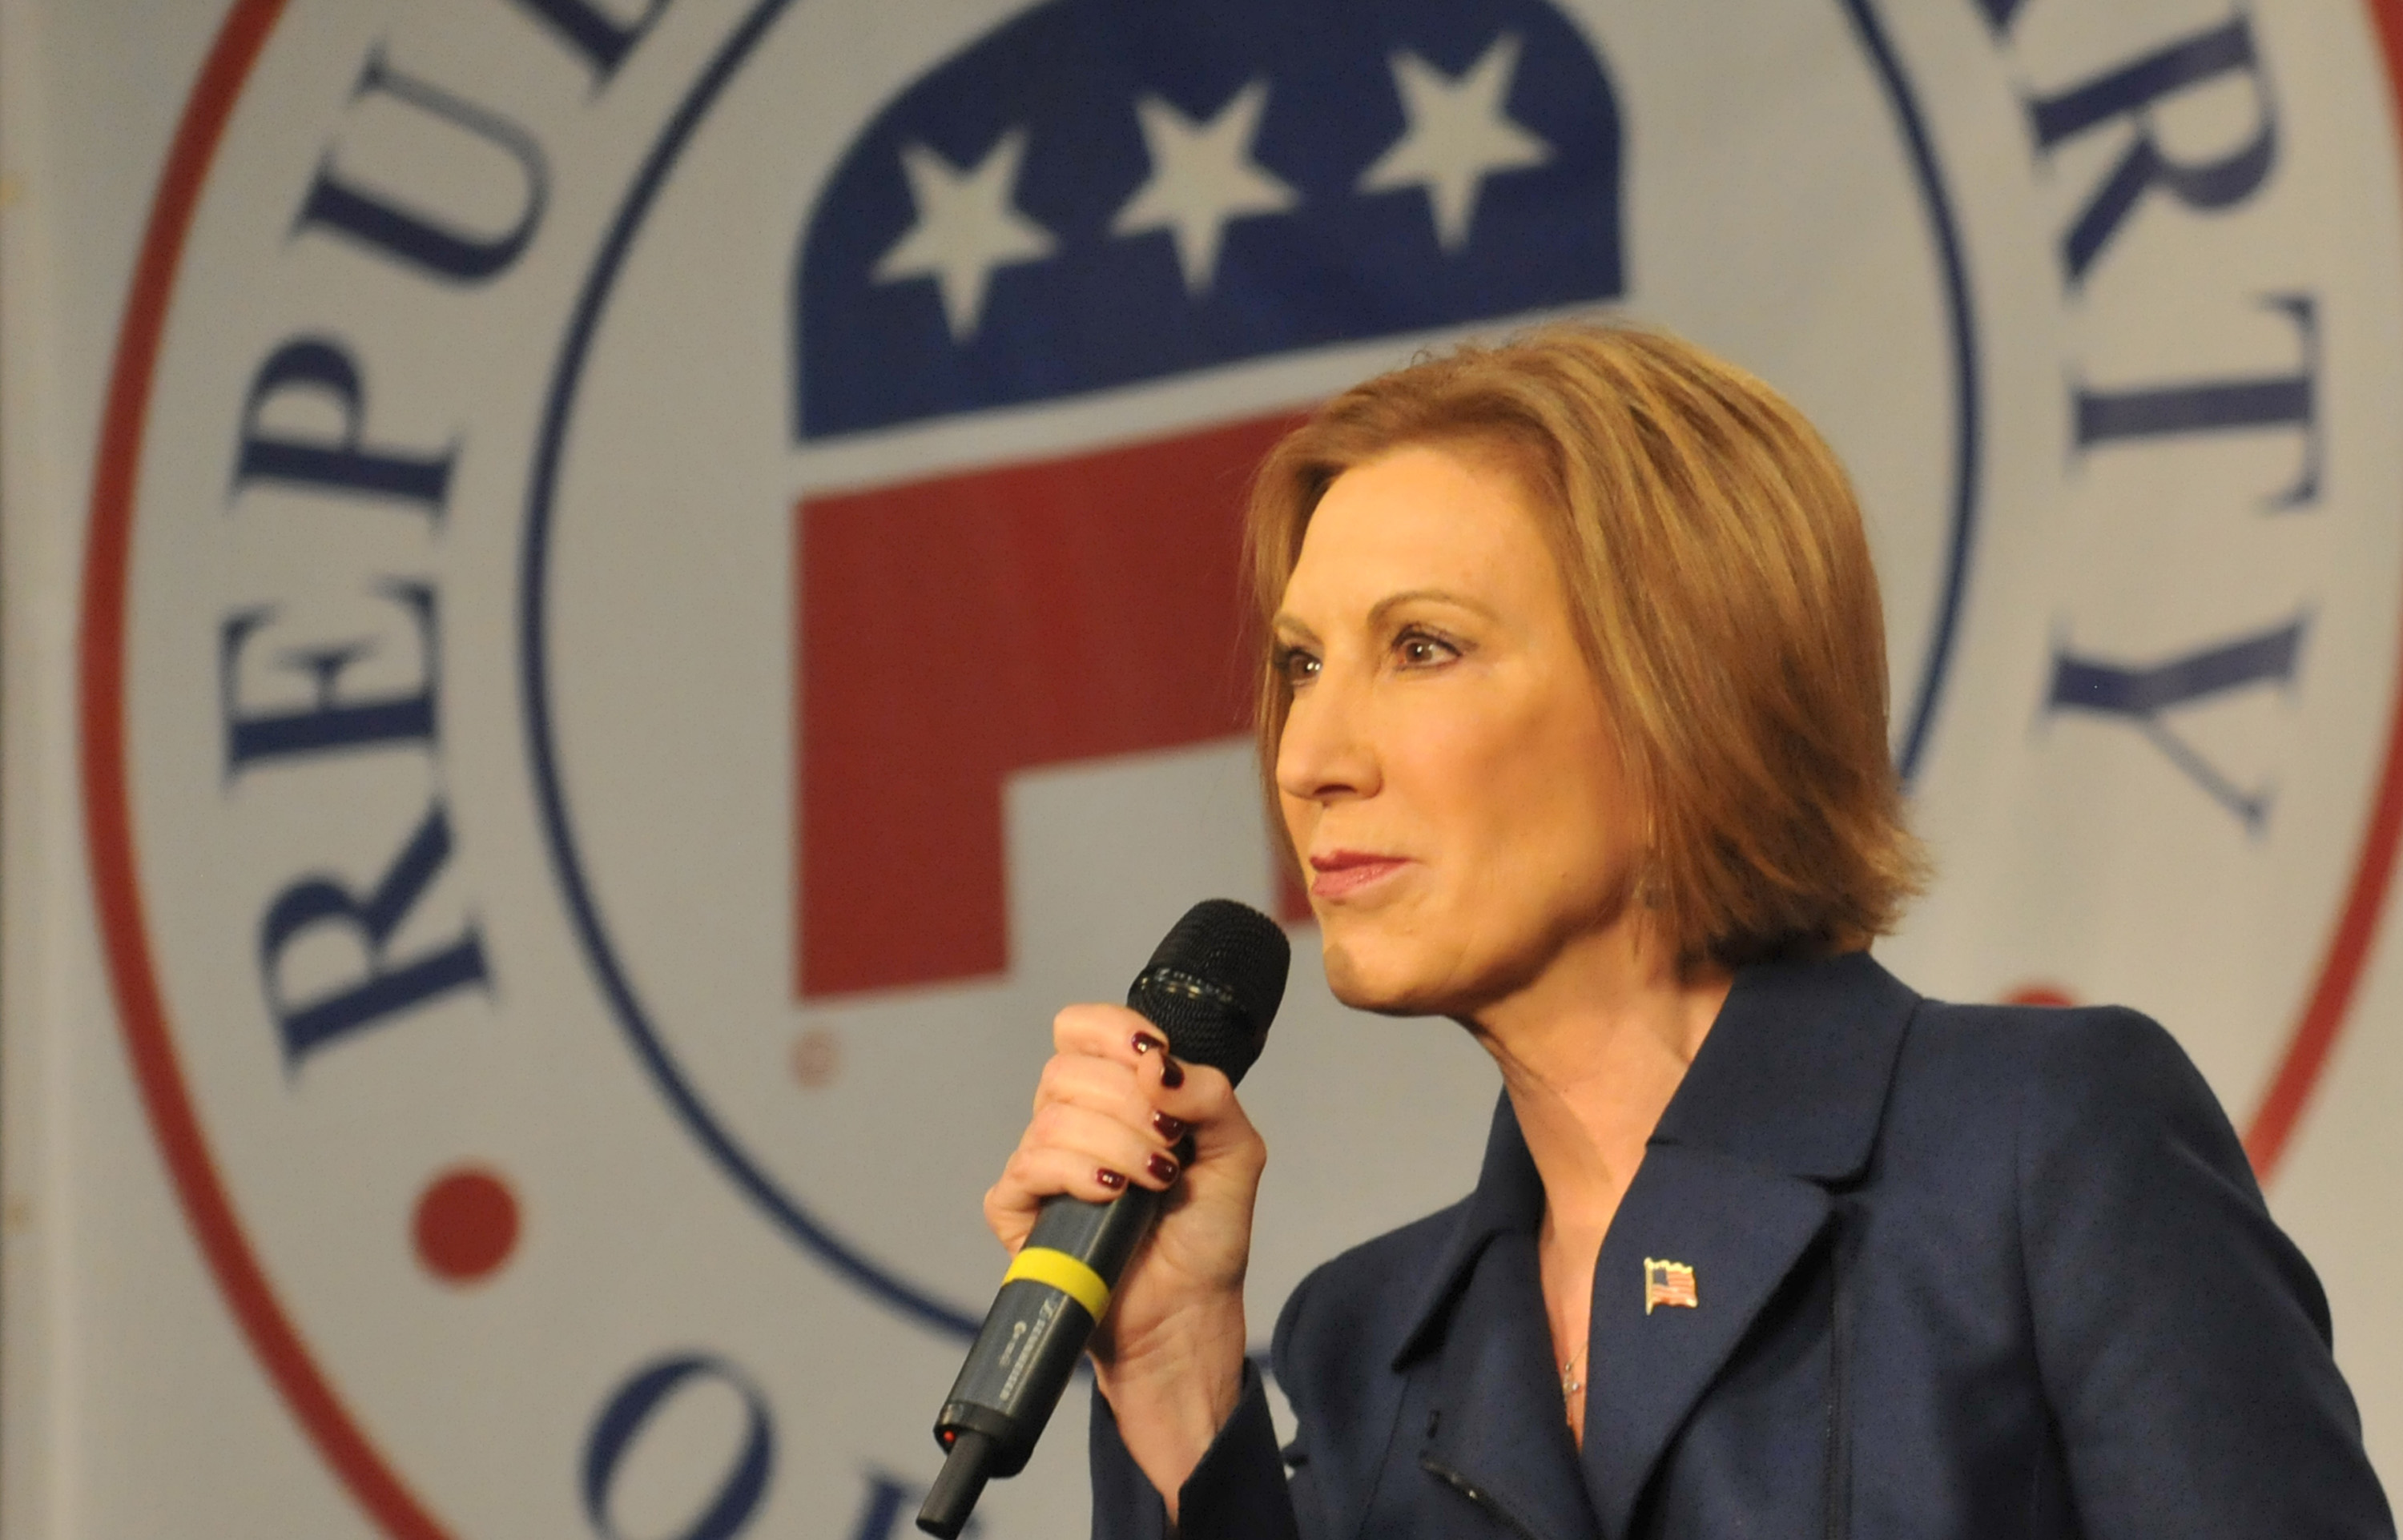 Republican presidential candidate Carly Fiorina speaks at the Growth and Opportunity Party, at the Iowa State Fair in Des Moines, Iowa, on Oct. 31, 2015.